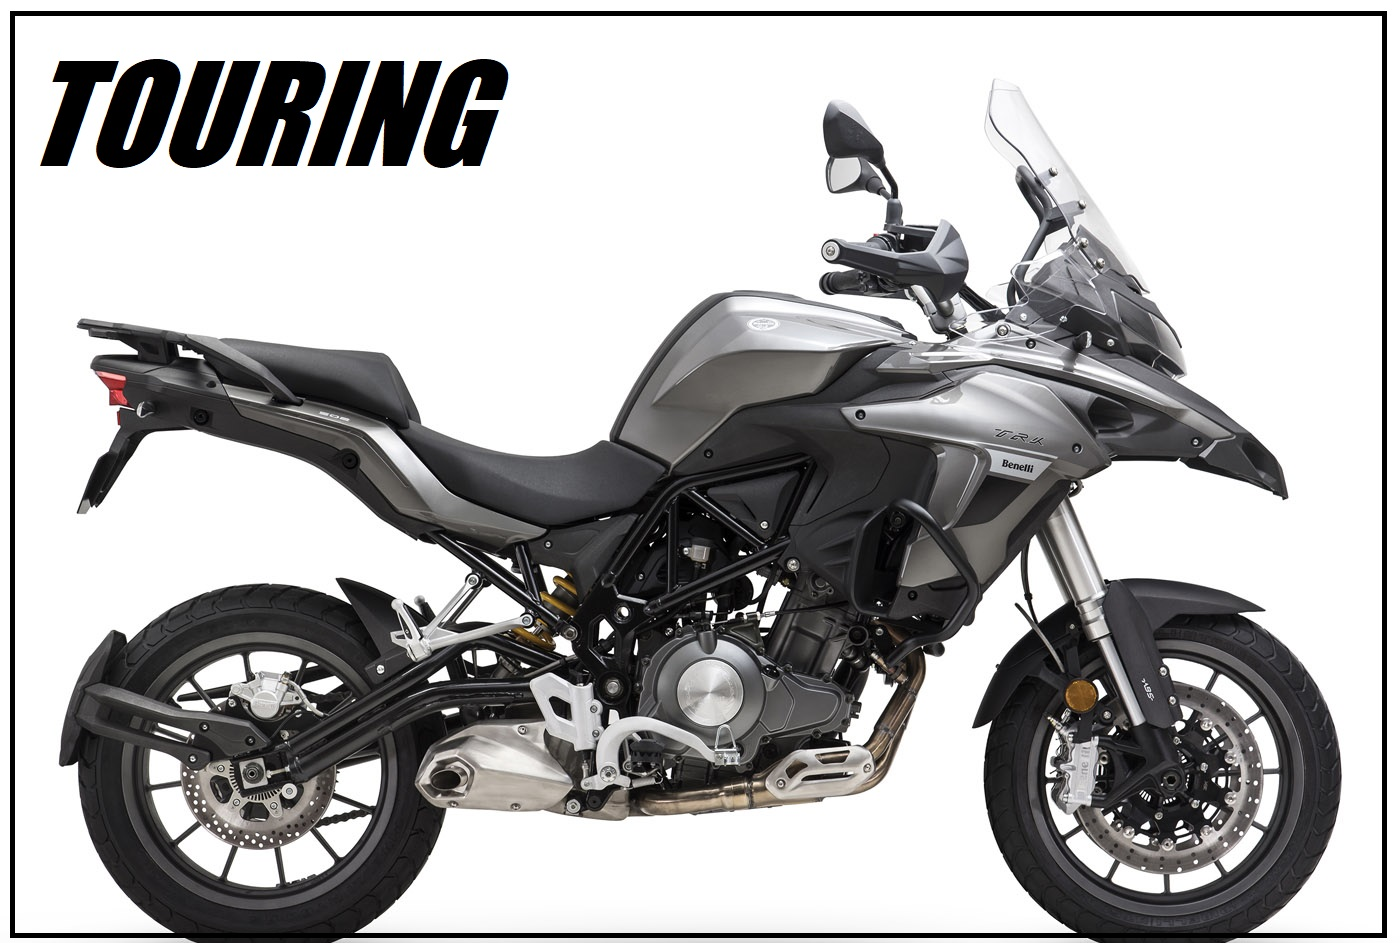 Benelli Touring